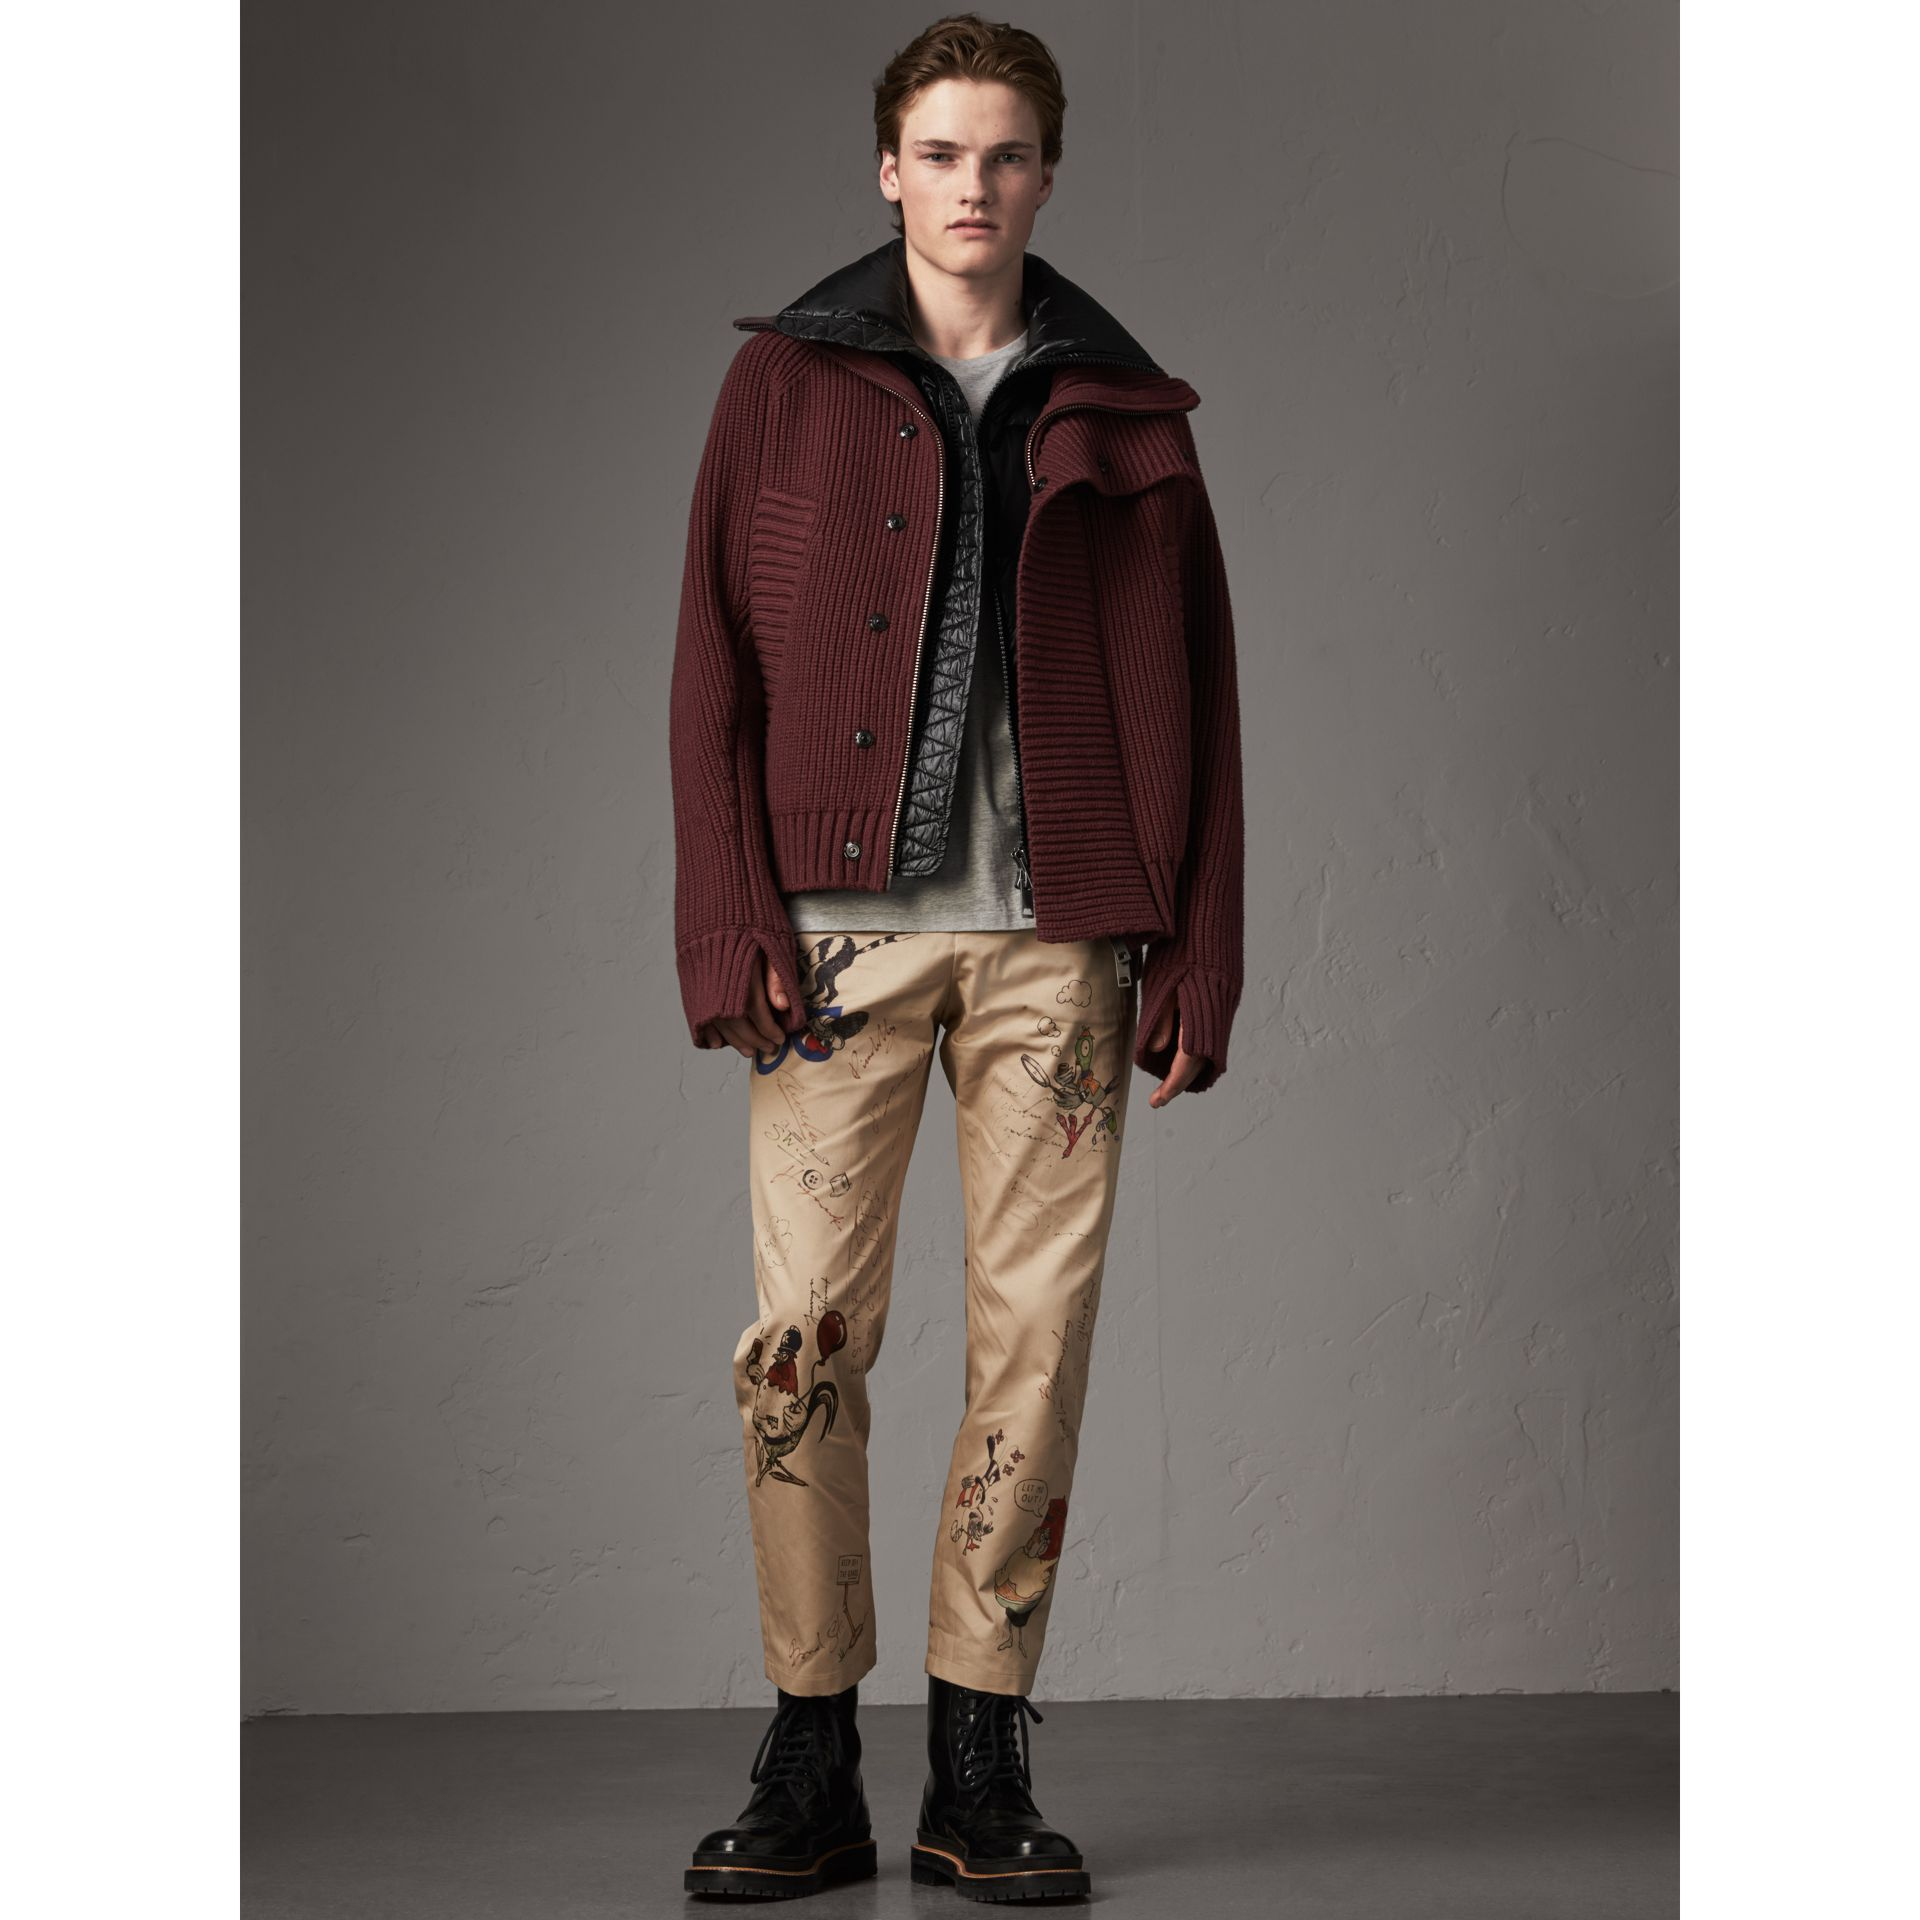 Rib Knit Cotton Blend Jacket with Down-filled Gilet in Mahogany Red - Men | Burberry United Kingdom - gallery image 5